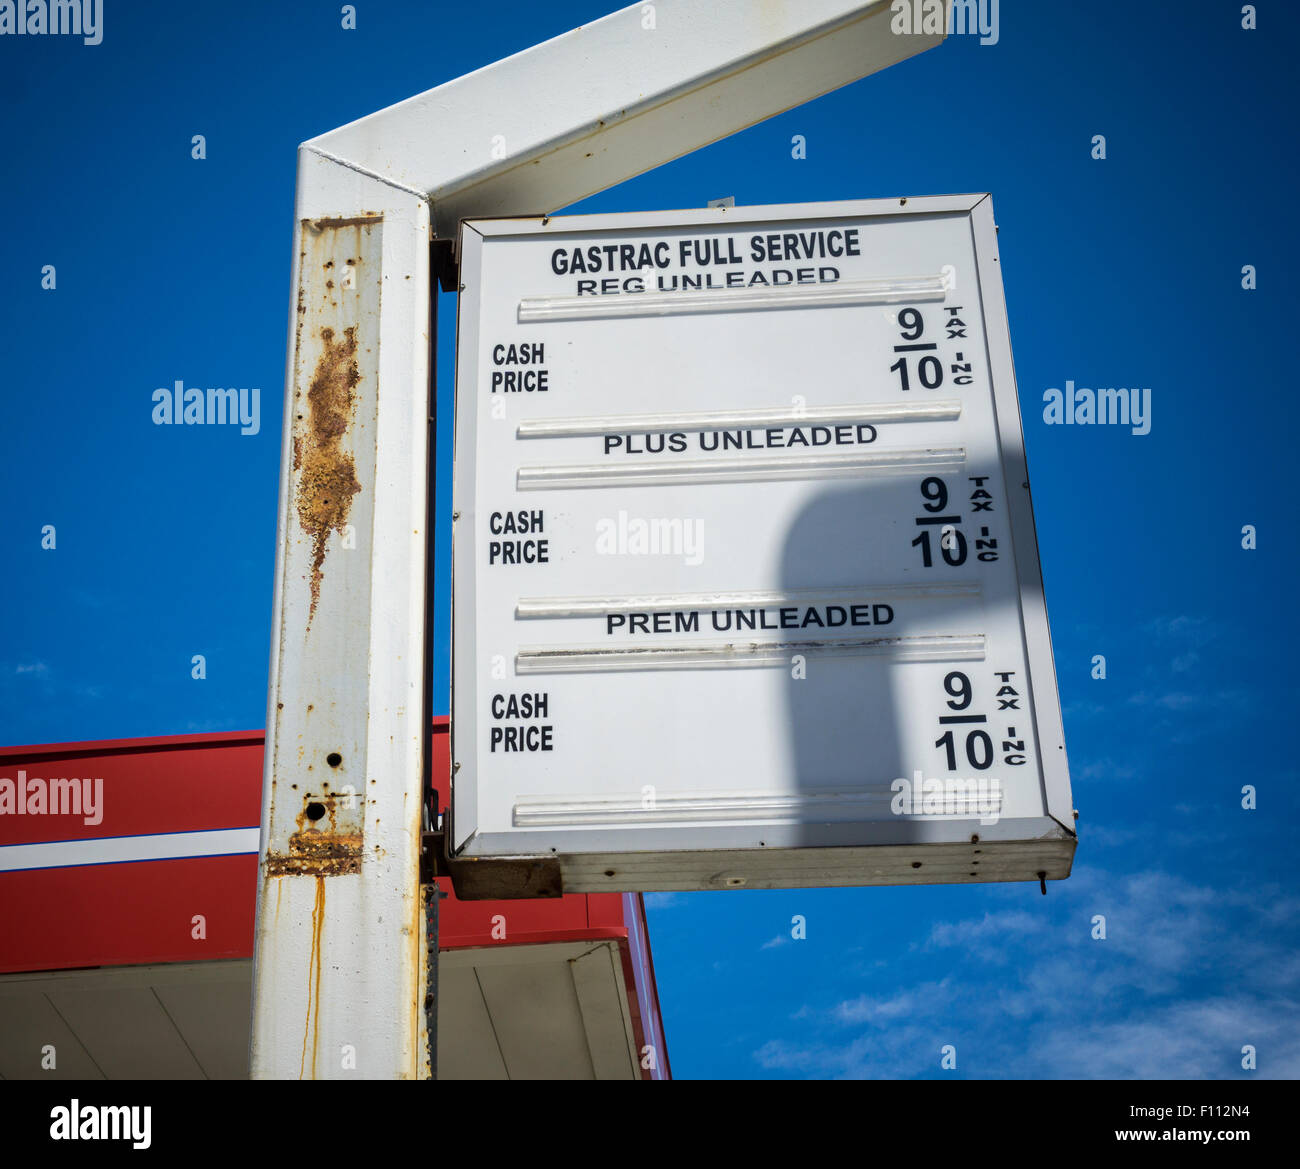 a blank sign used for posting gas prices in an out of business gas